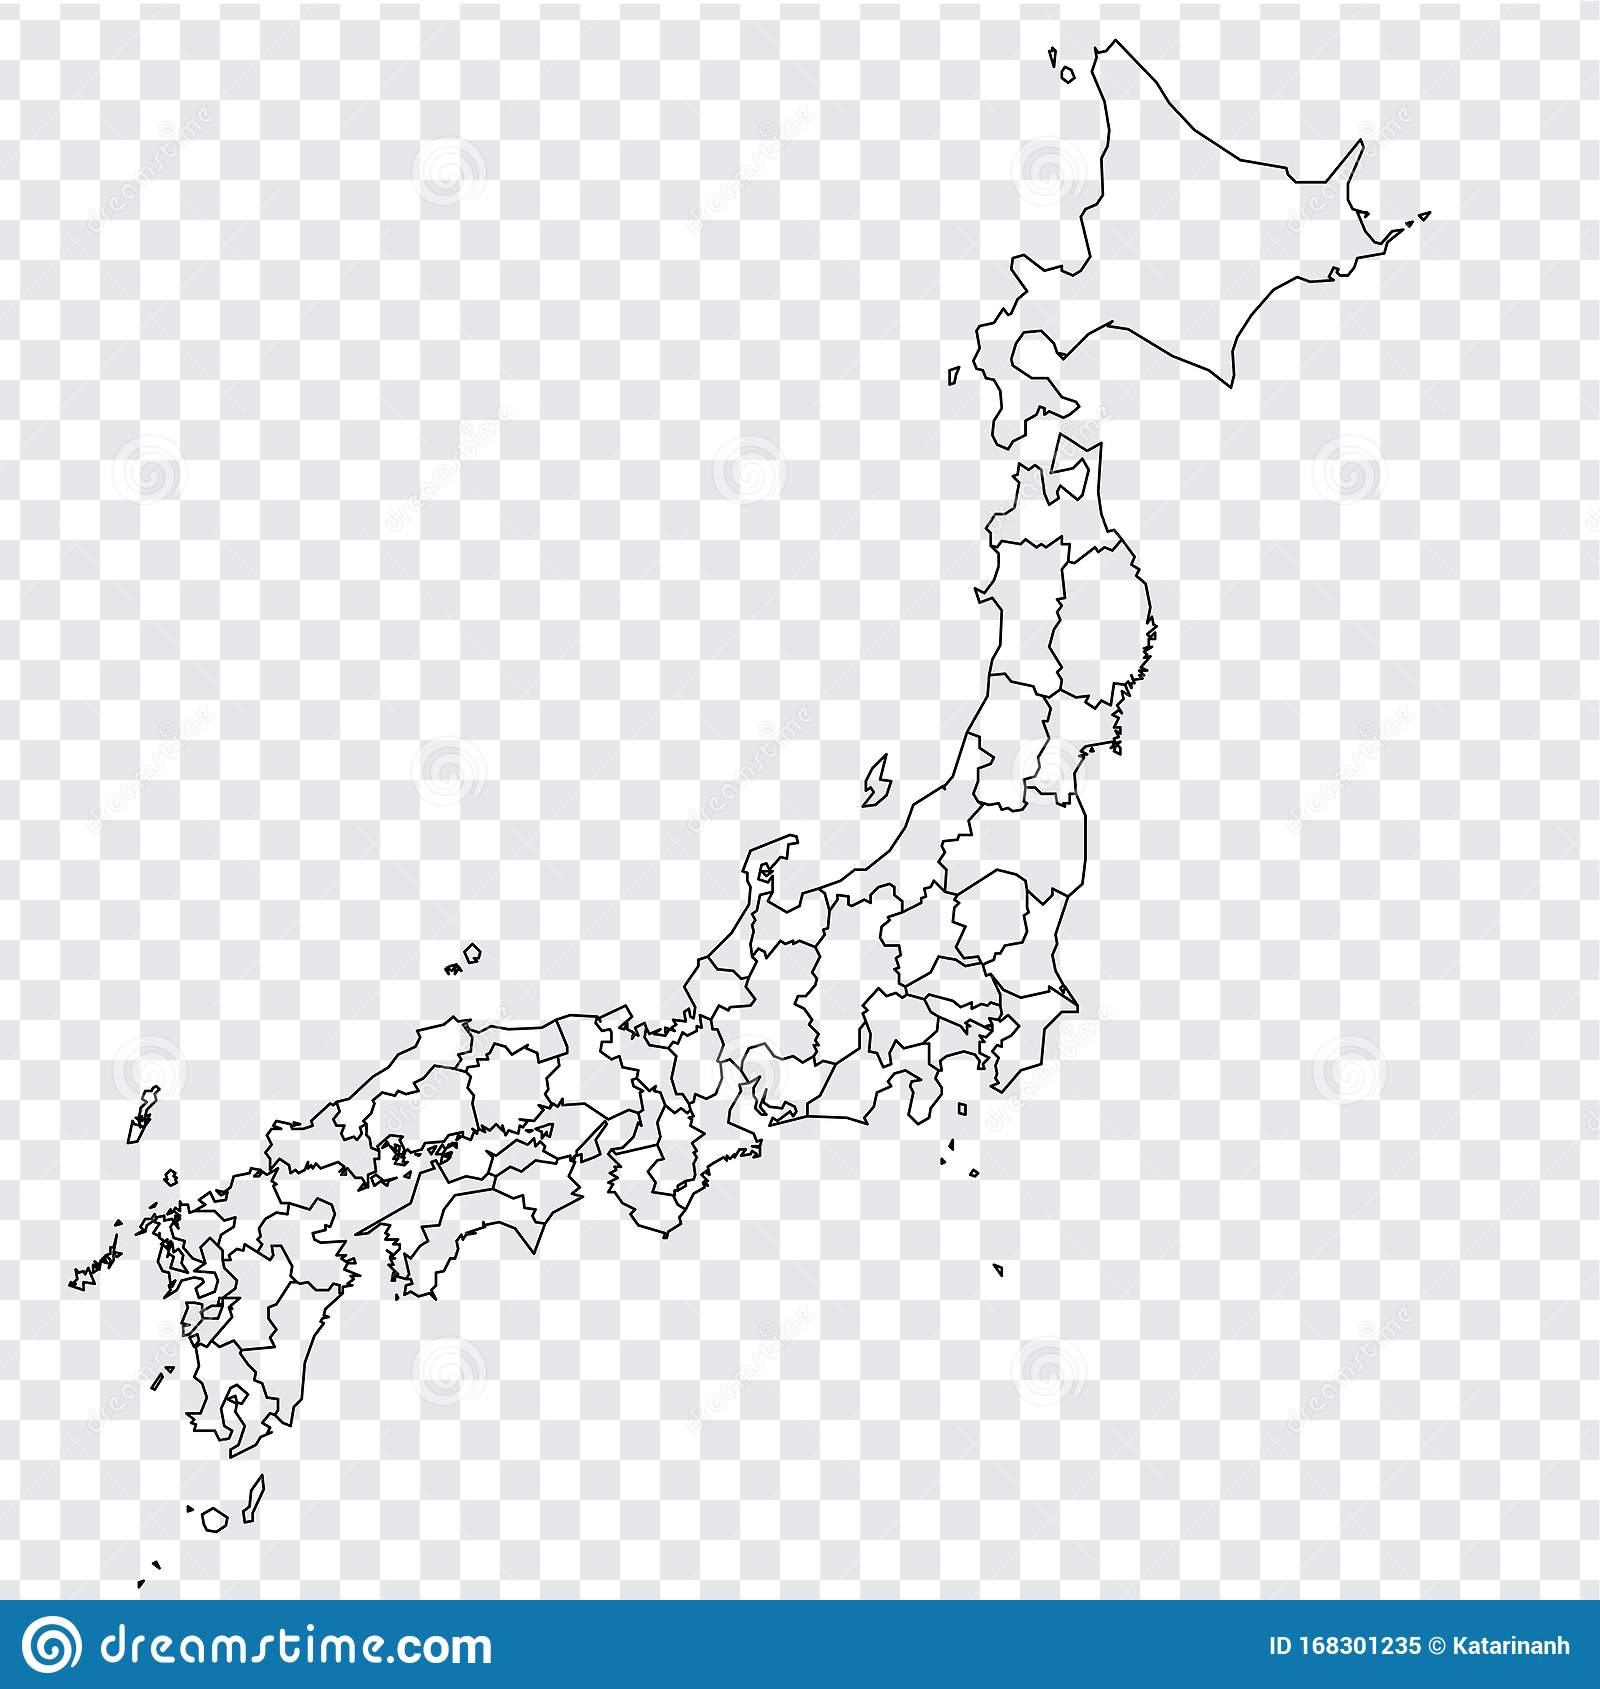 Blank Map Of Japan High Quality Map Of Japan With Provinces On Transparent Background For Your Web Site Design Logo App Ui As Stock Vector Illustration Of Icon Border 168301235